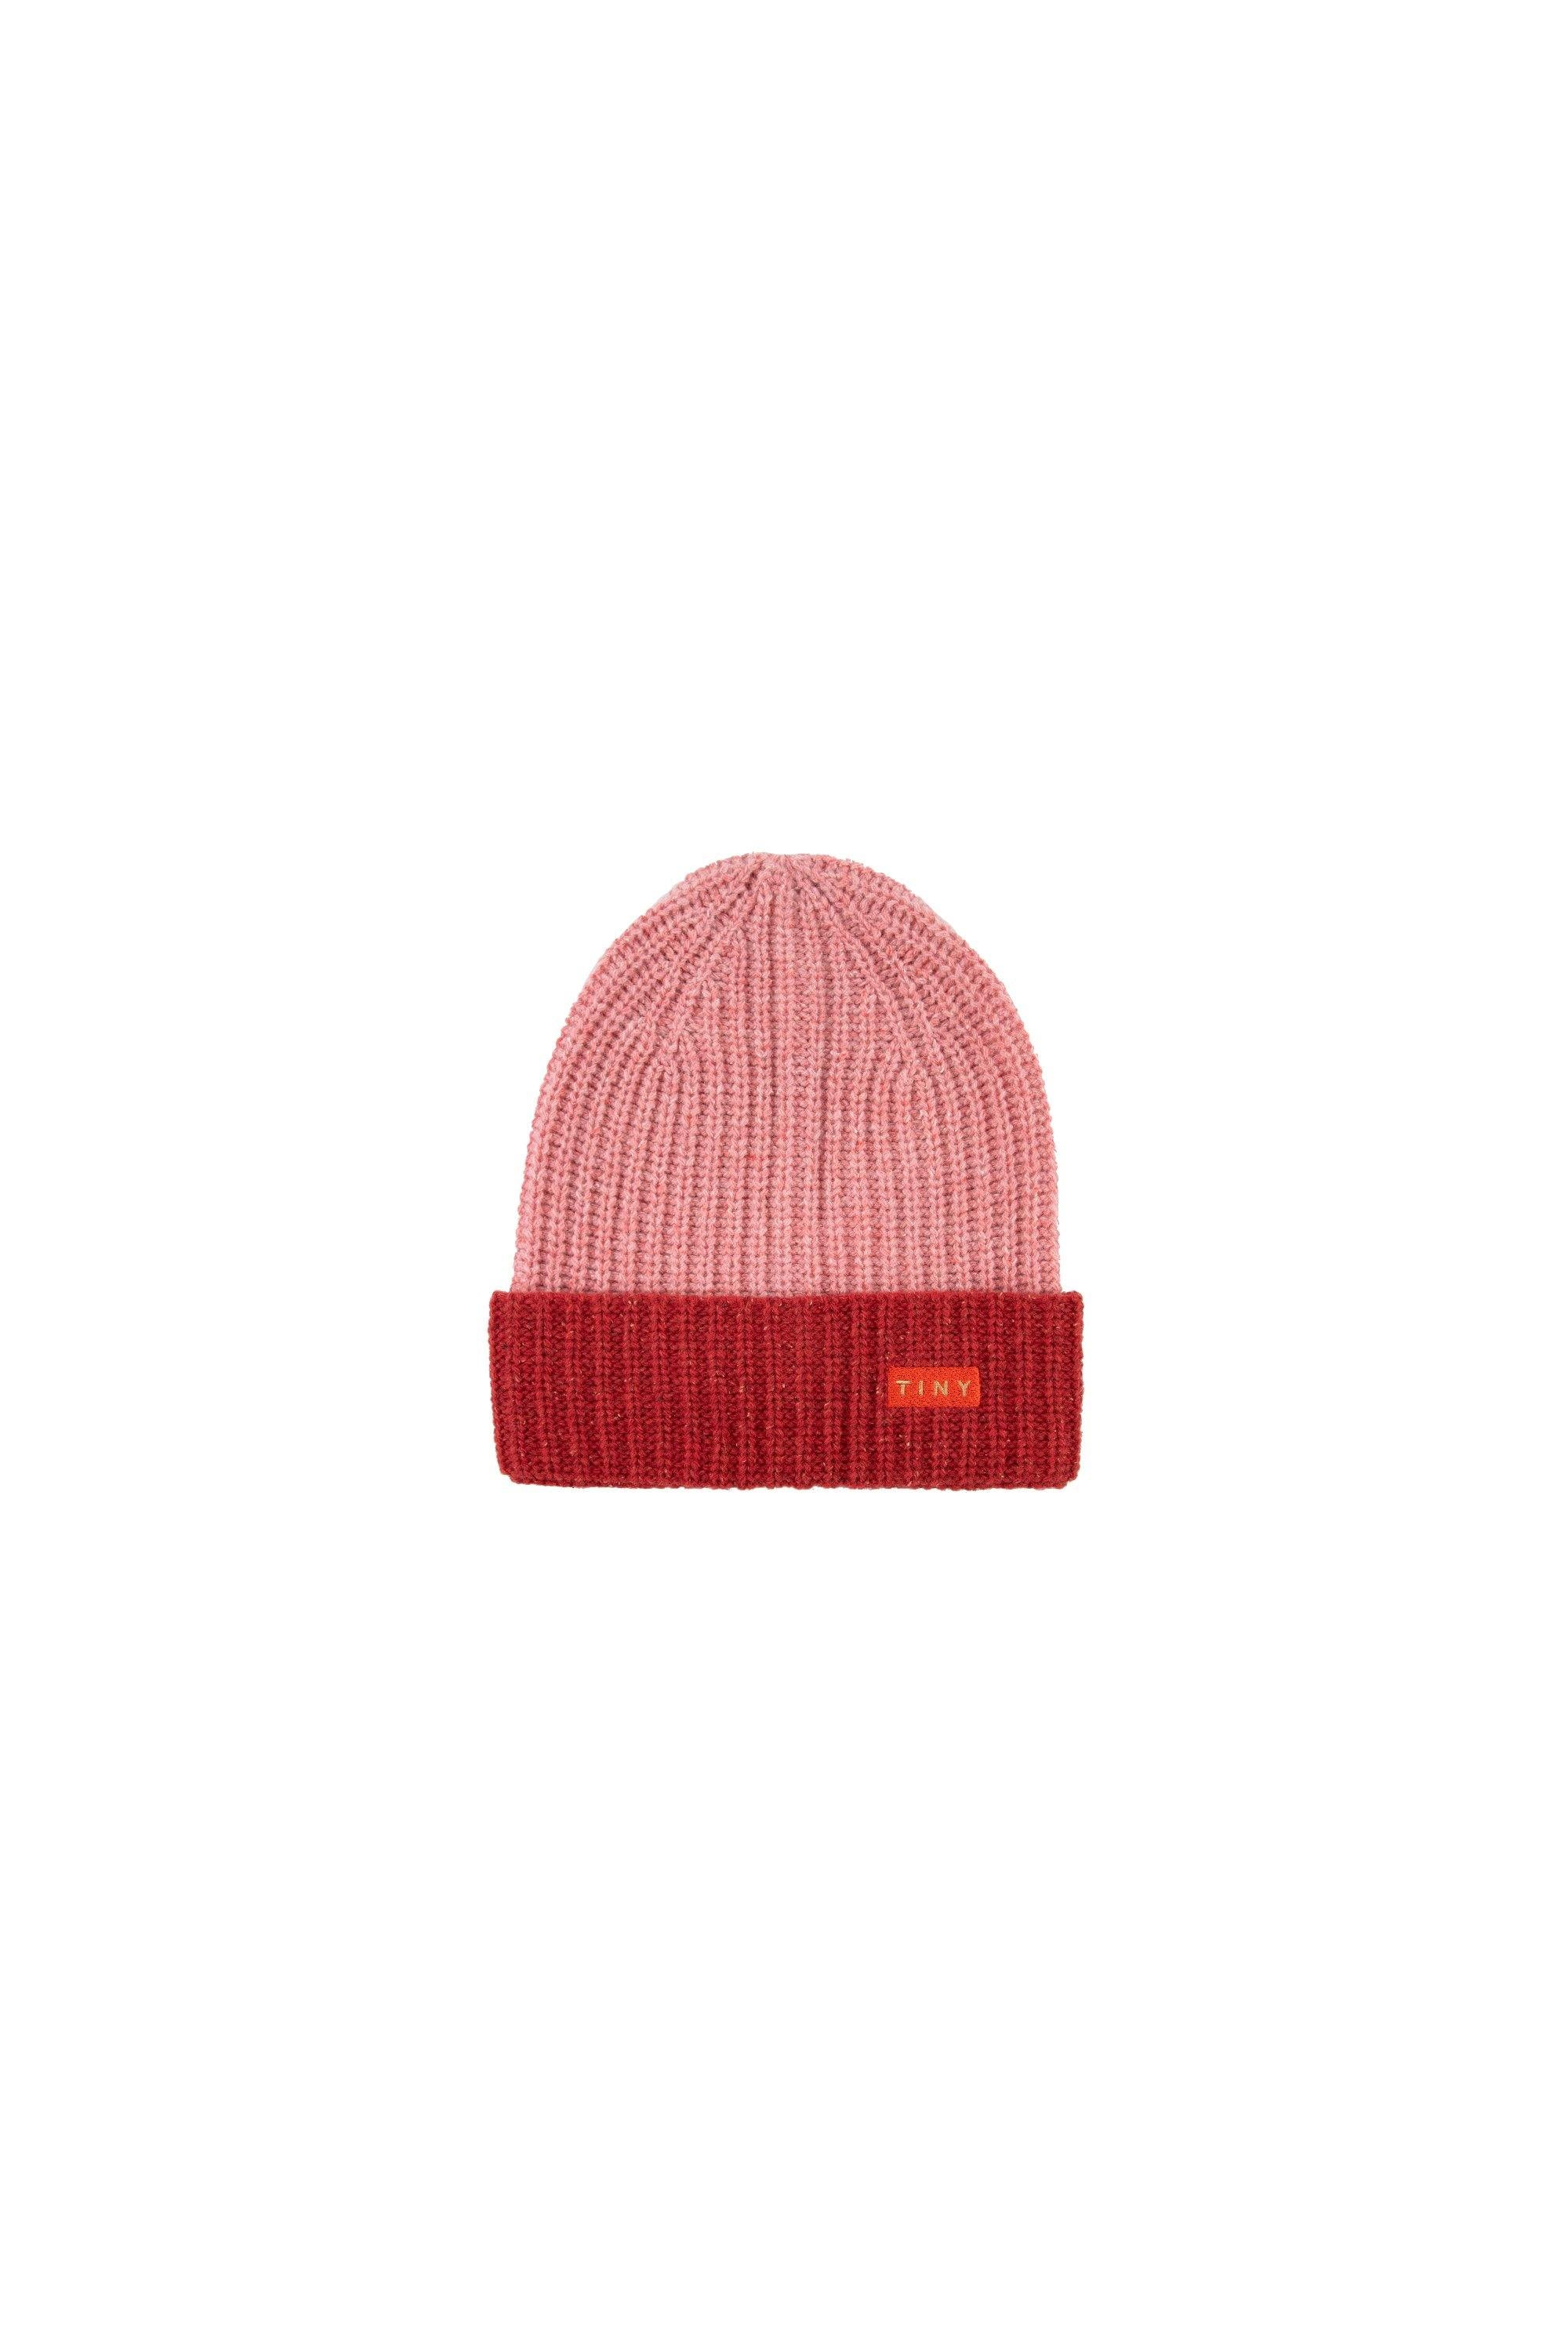 'TINY'' COLOR BLOCK BEANIE pale pink/burgundy